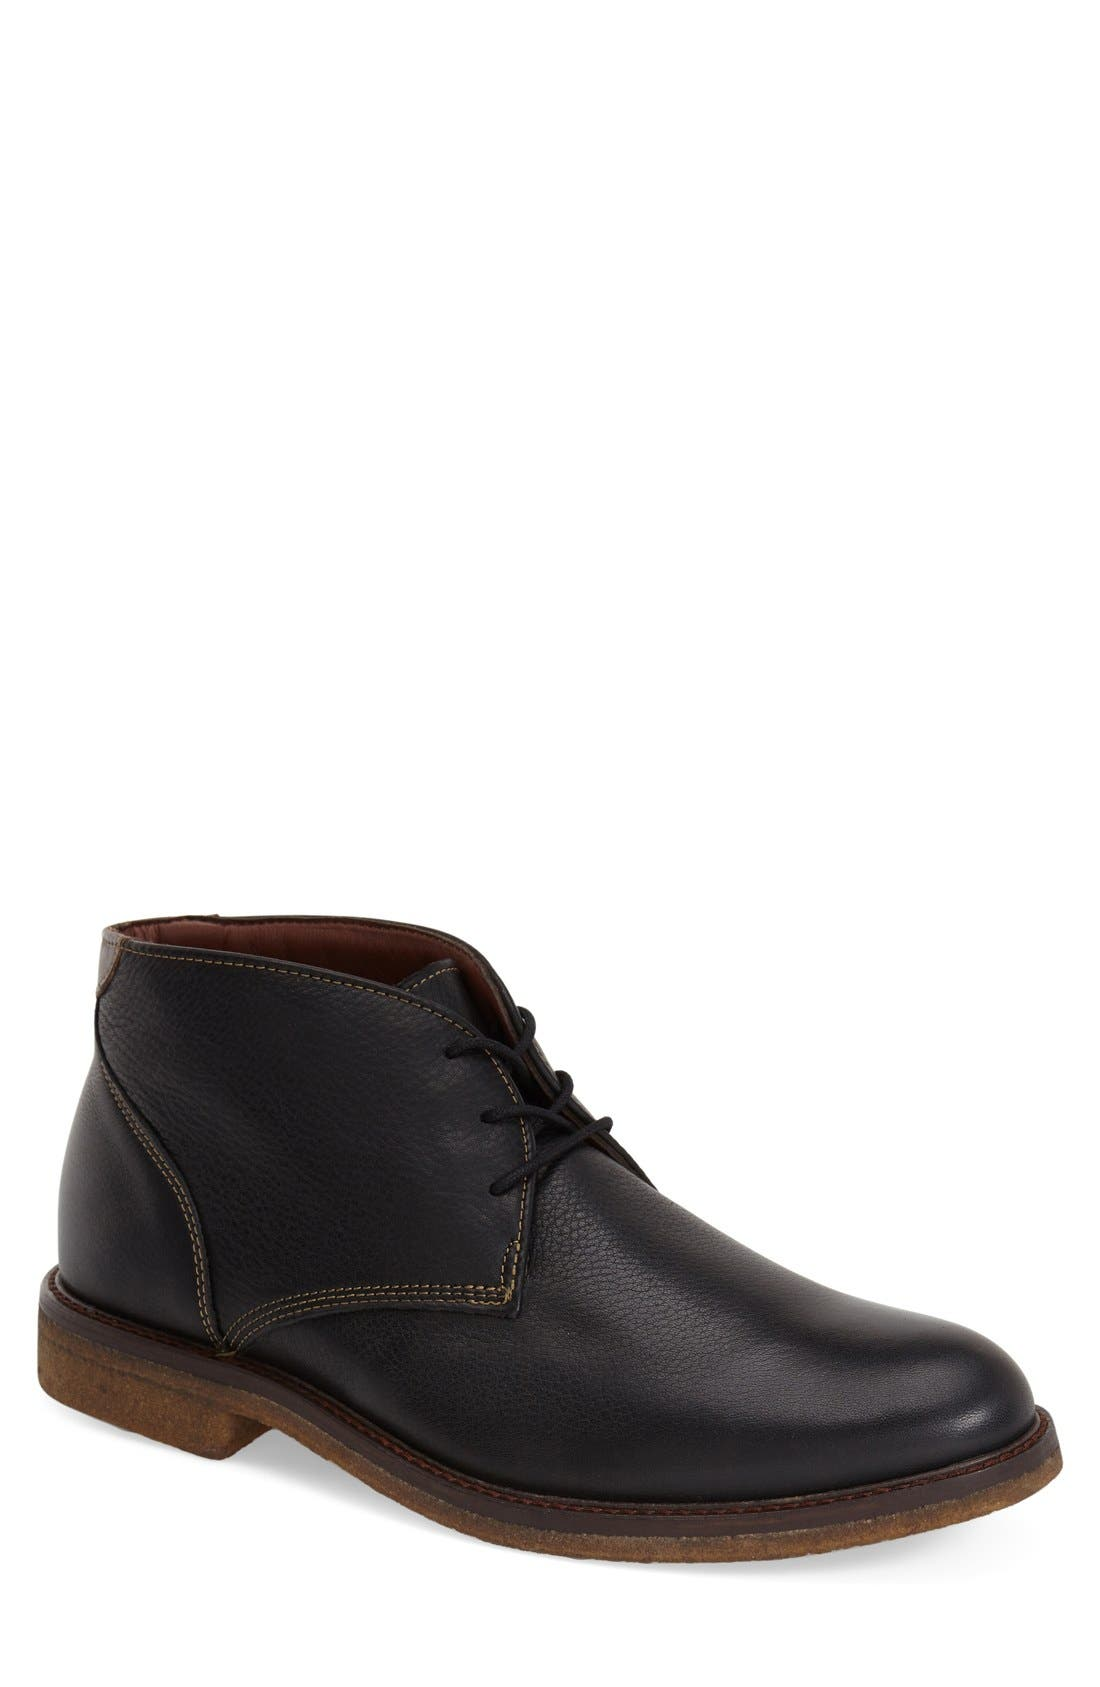 'Copeland' Suede Chukka Boot,                         Main,                         color, BLACK LEATHER